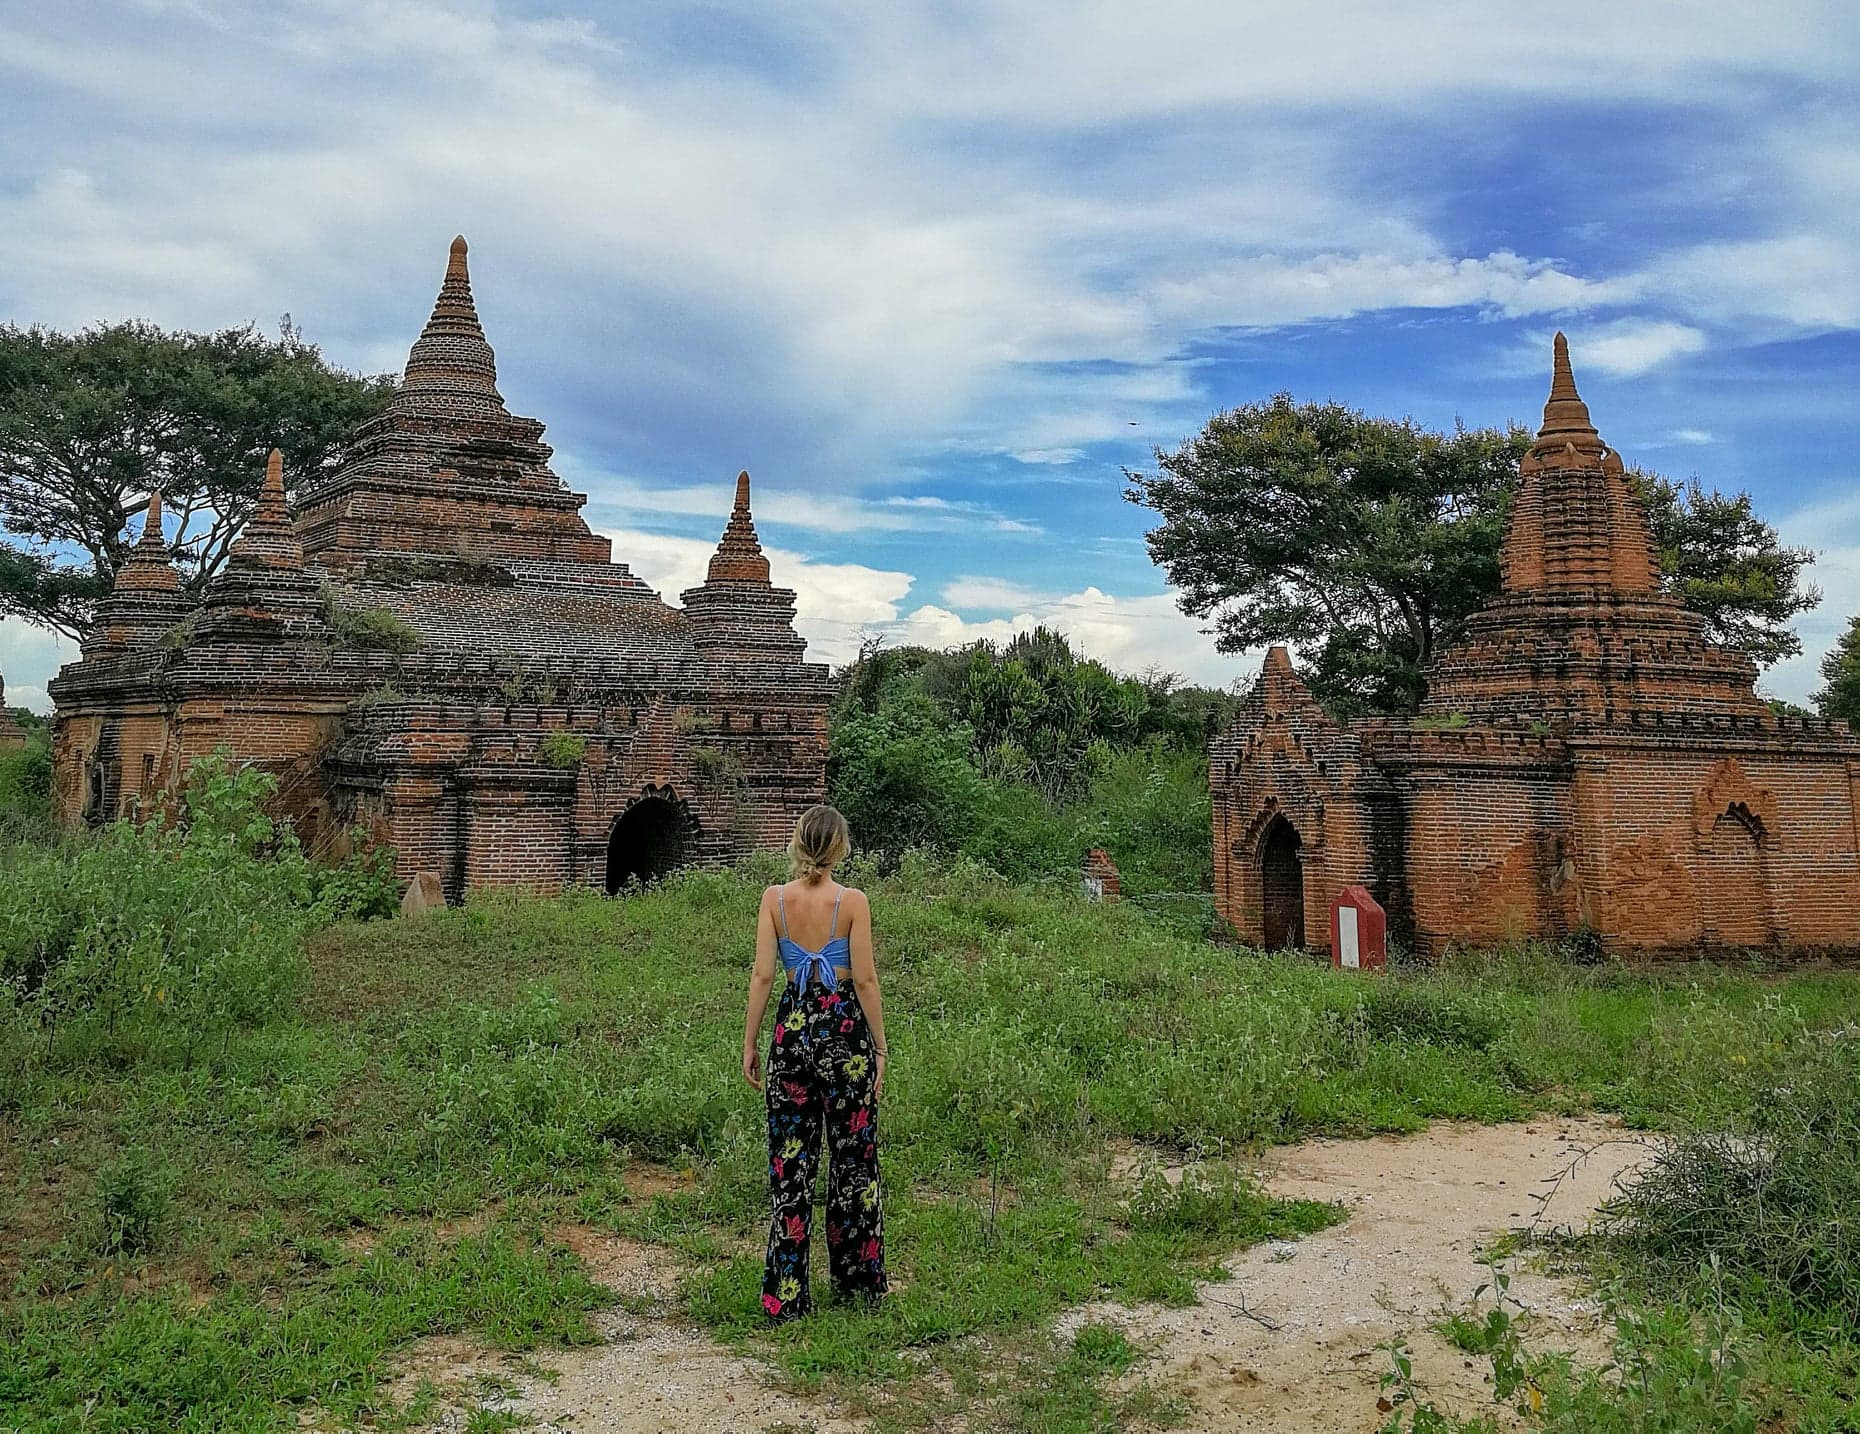 Rose Cornwell exploring the ancient pagodas of Bagan.